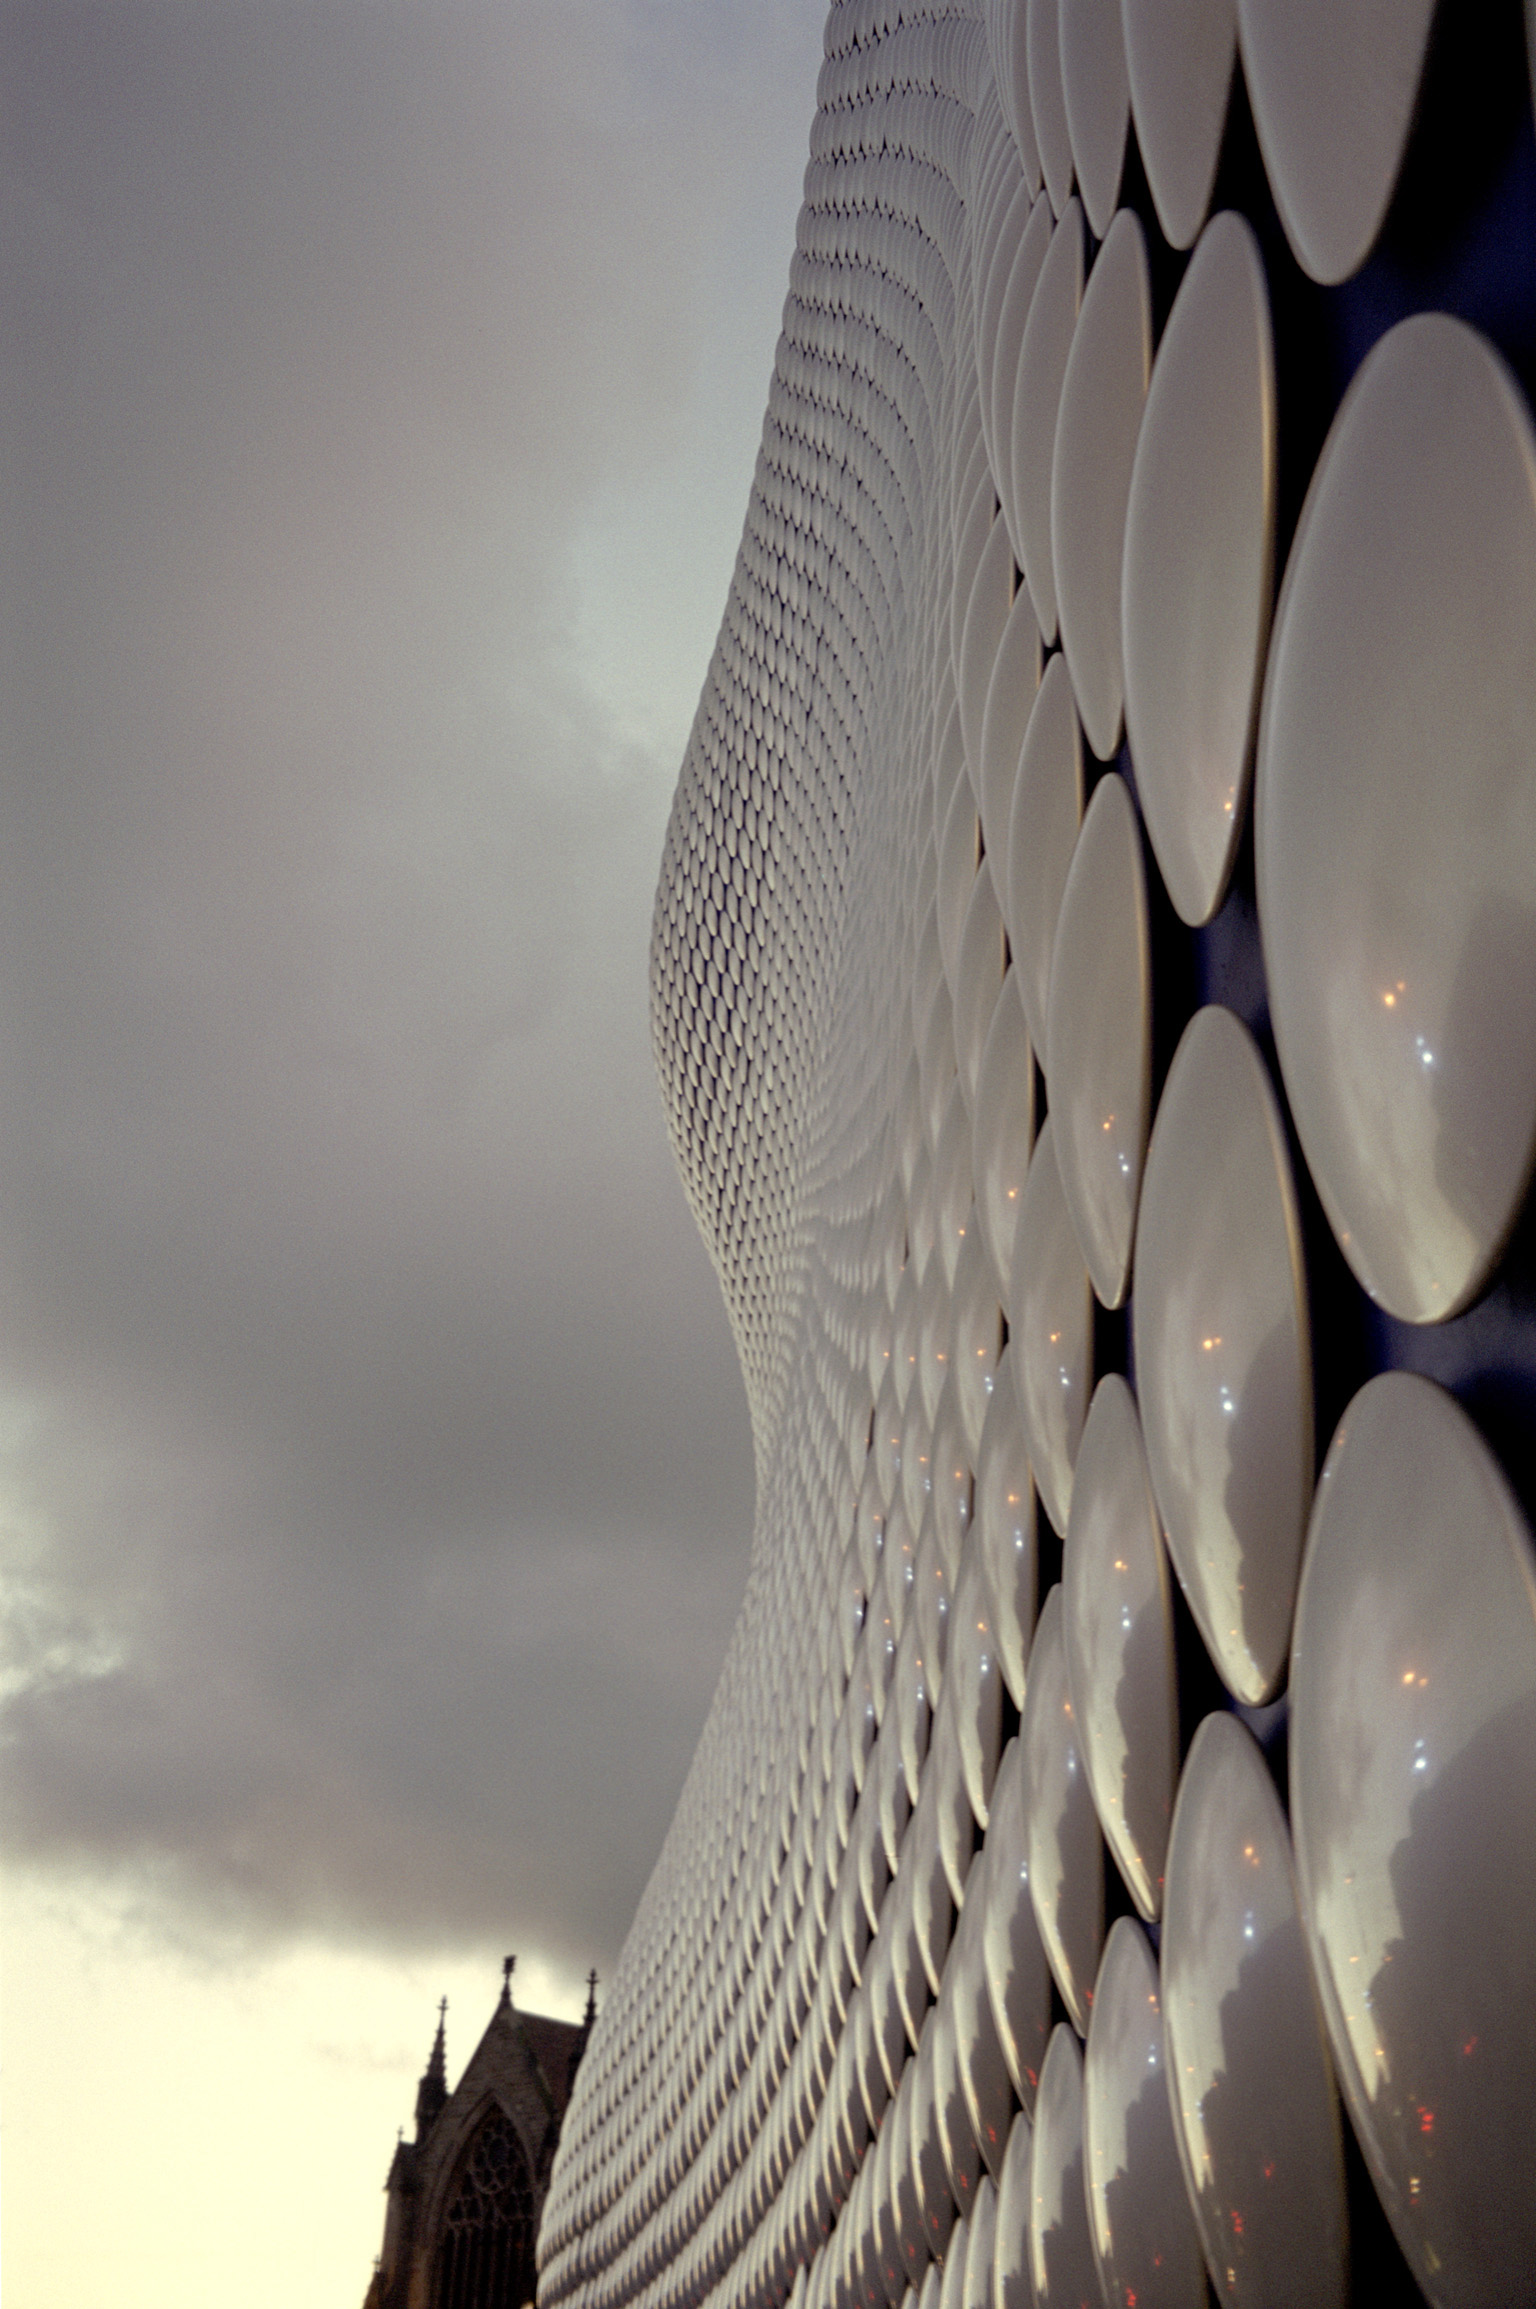 Close up Architecture of Famous Selfridges Store at Bullring, Birmingham on Gray Sky Background.